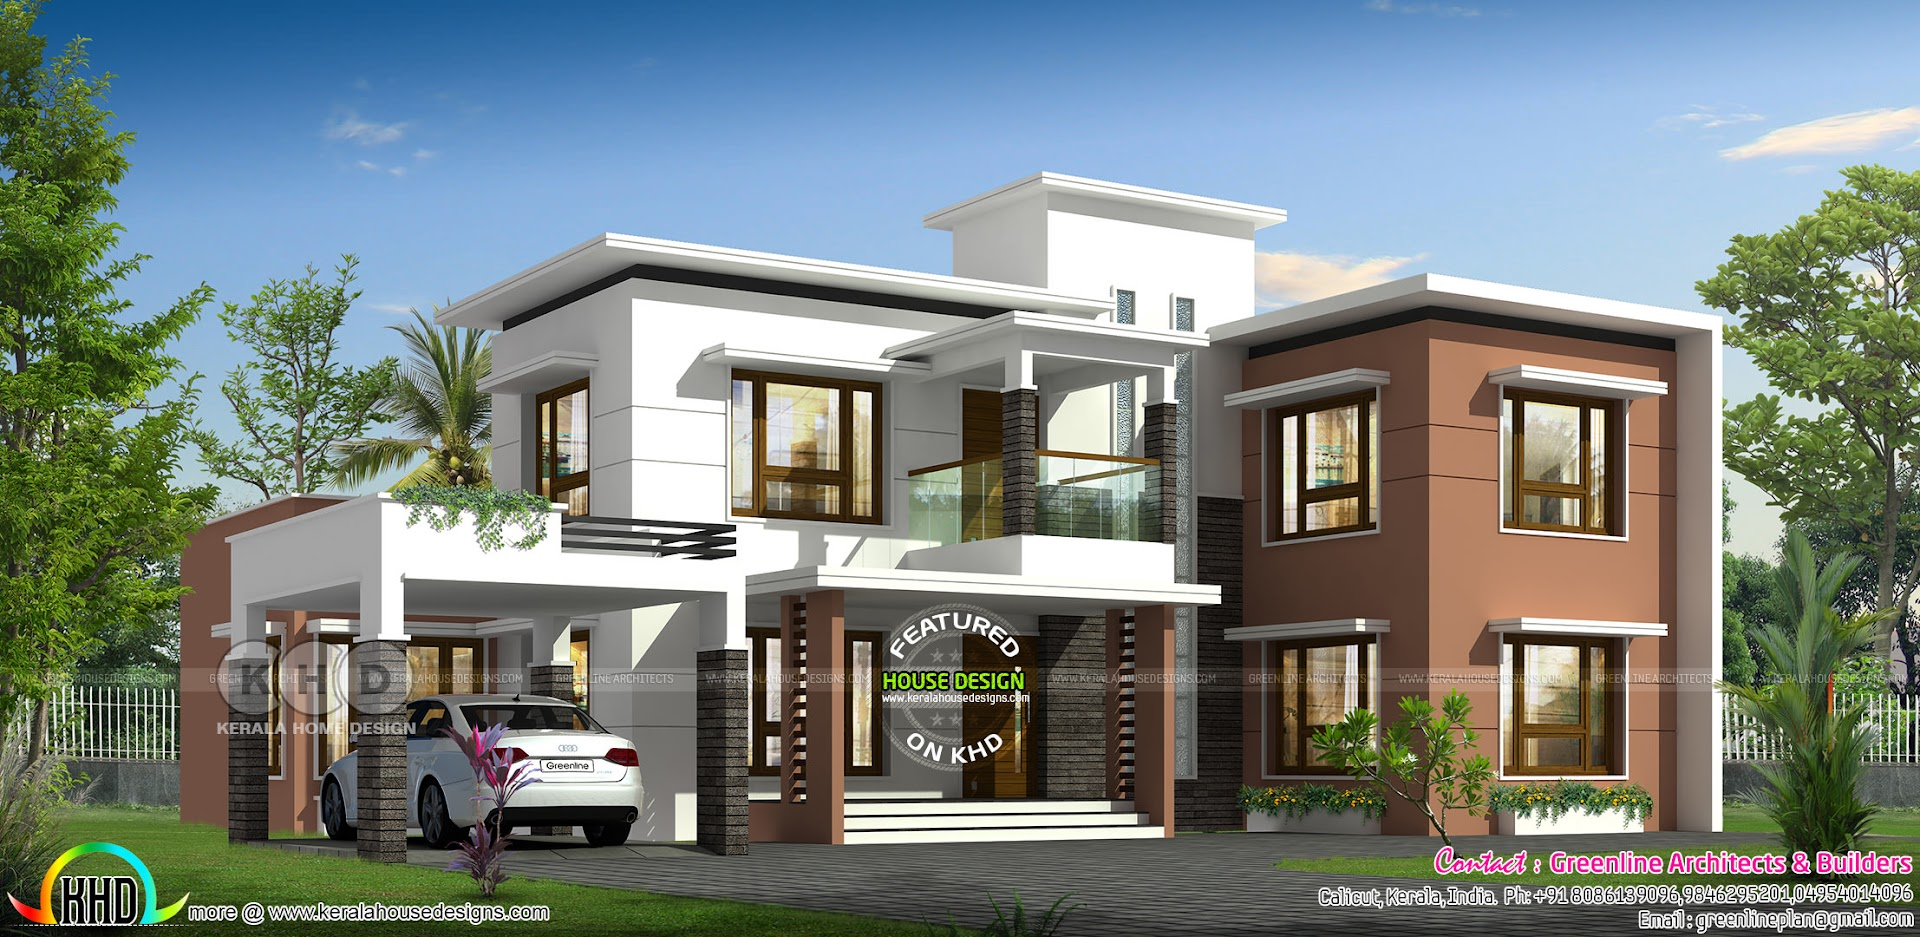 3394 sq ft flat roof contemporary house